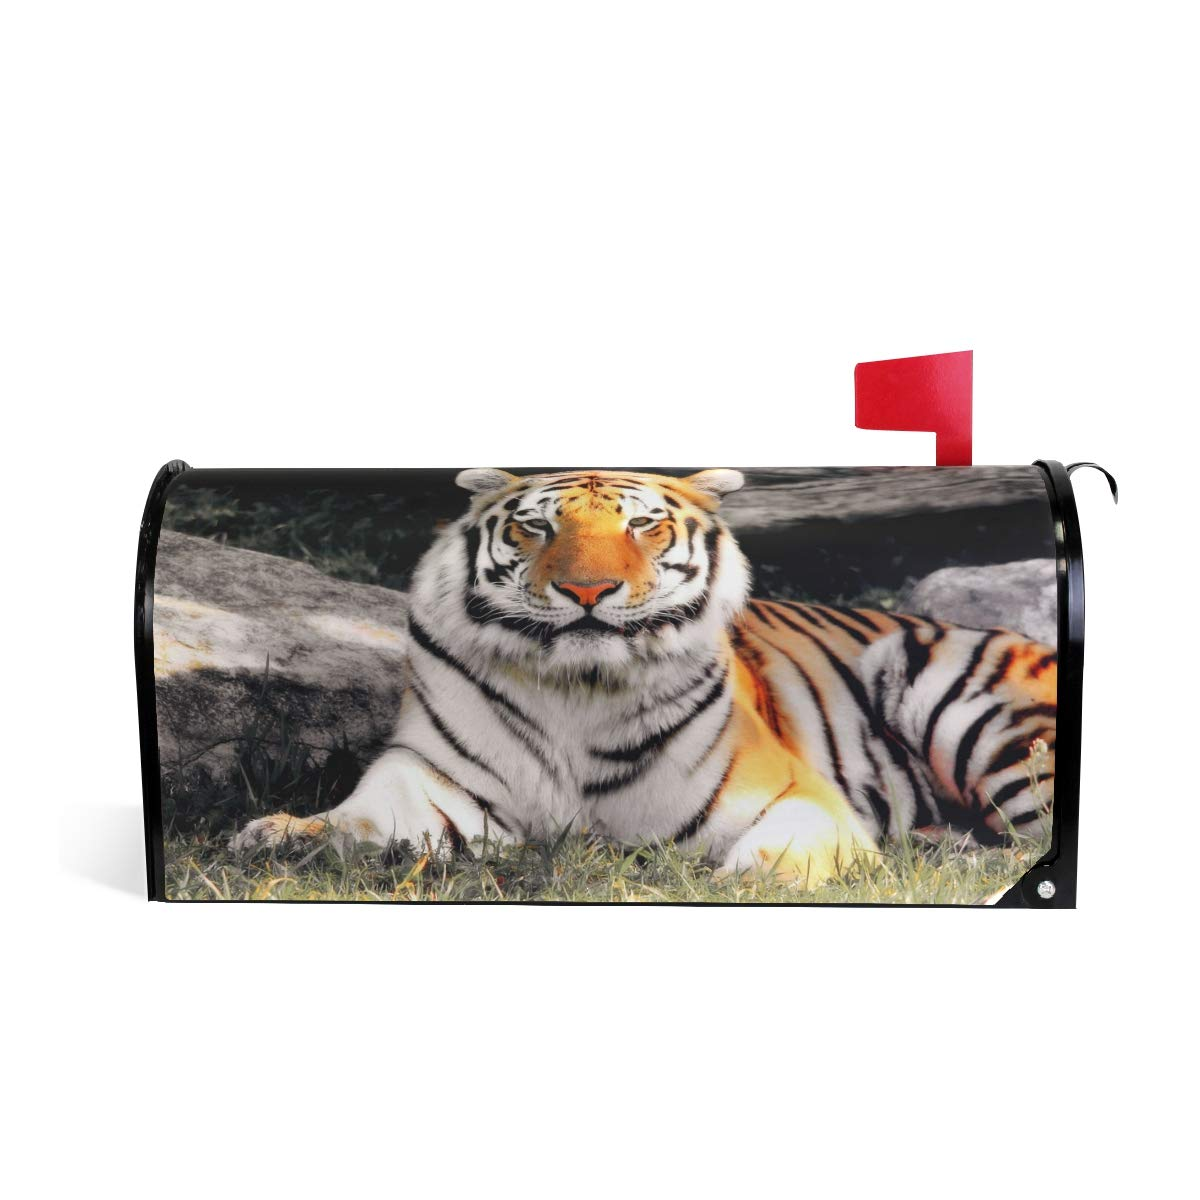 CPYang Cool Animal Tiger Magnetic Mailbox Cover for Home Garden Yard Deco Makeover Mail Wrap